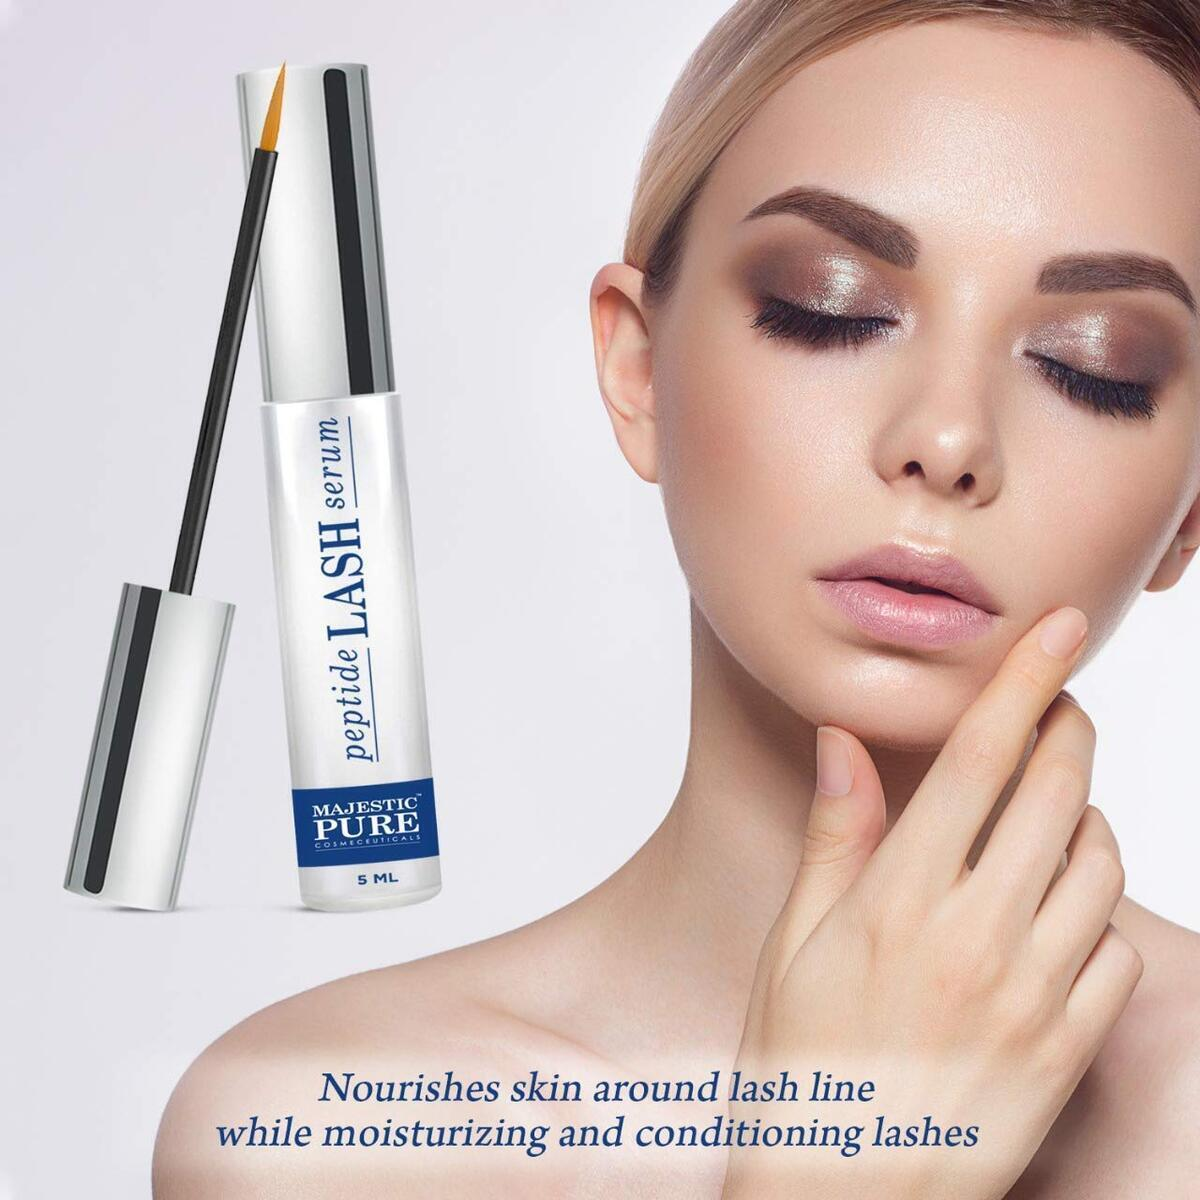 Eyelash Growth Serum for Lashes and Eyebrows by Majestic Pure - Revolutionary Peptide-based Eyelash Serum Supports Long and Thicker Lashes and Brows - Moisturizes and Conditions Eyelashes - 5 ml